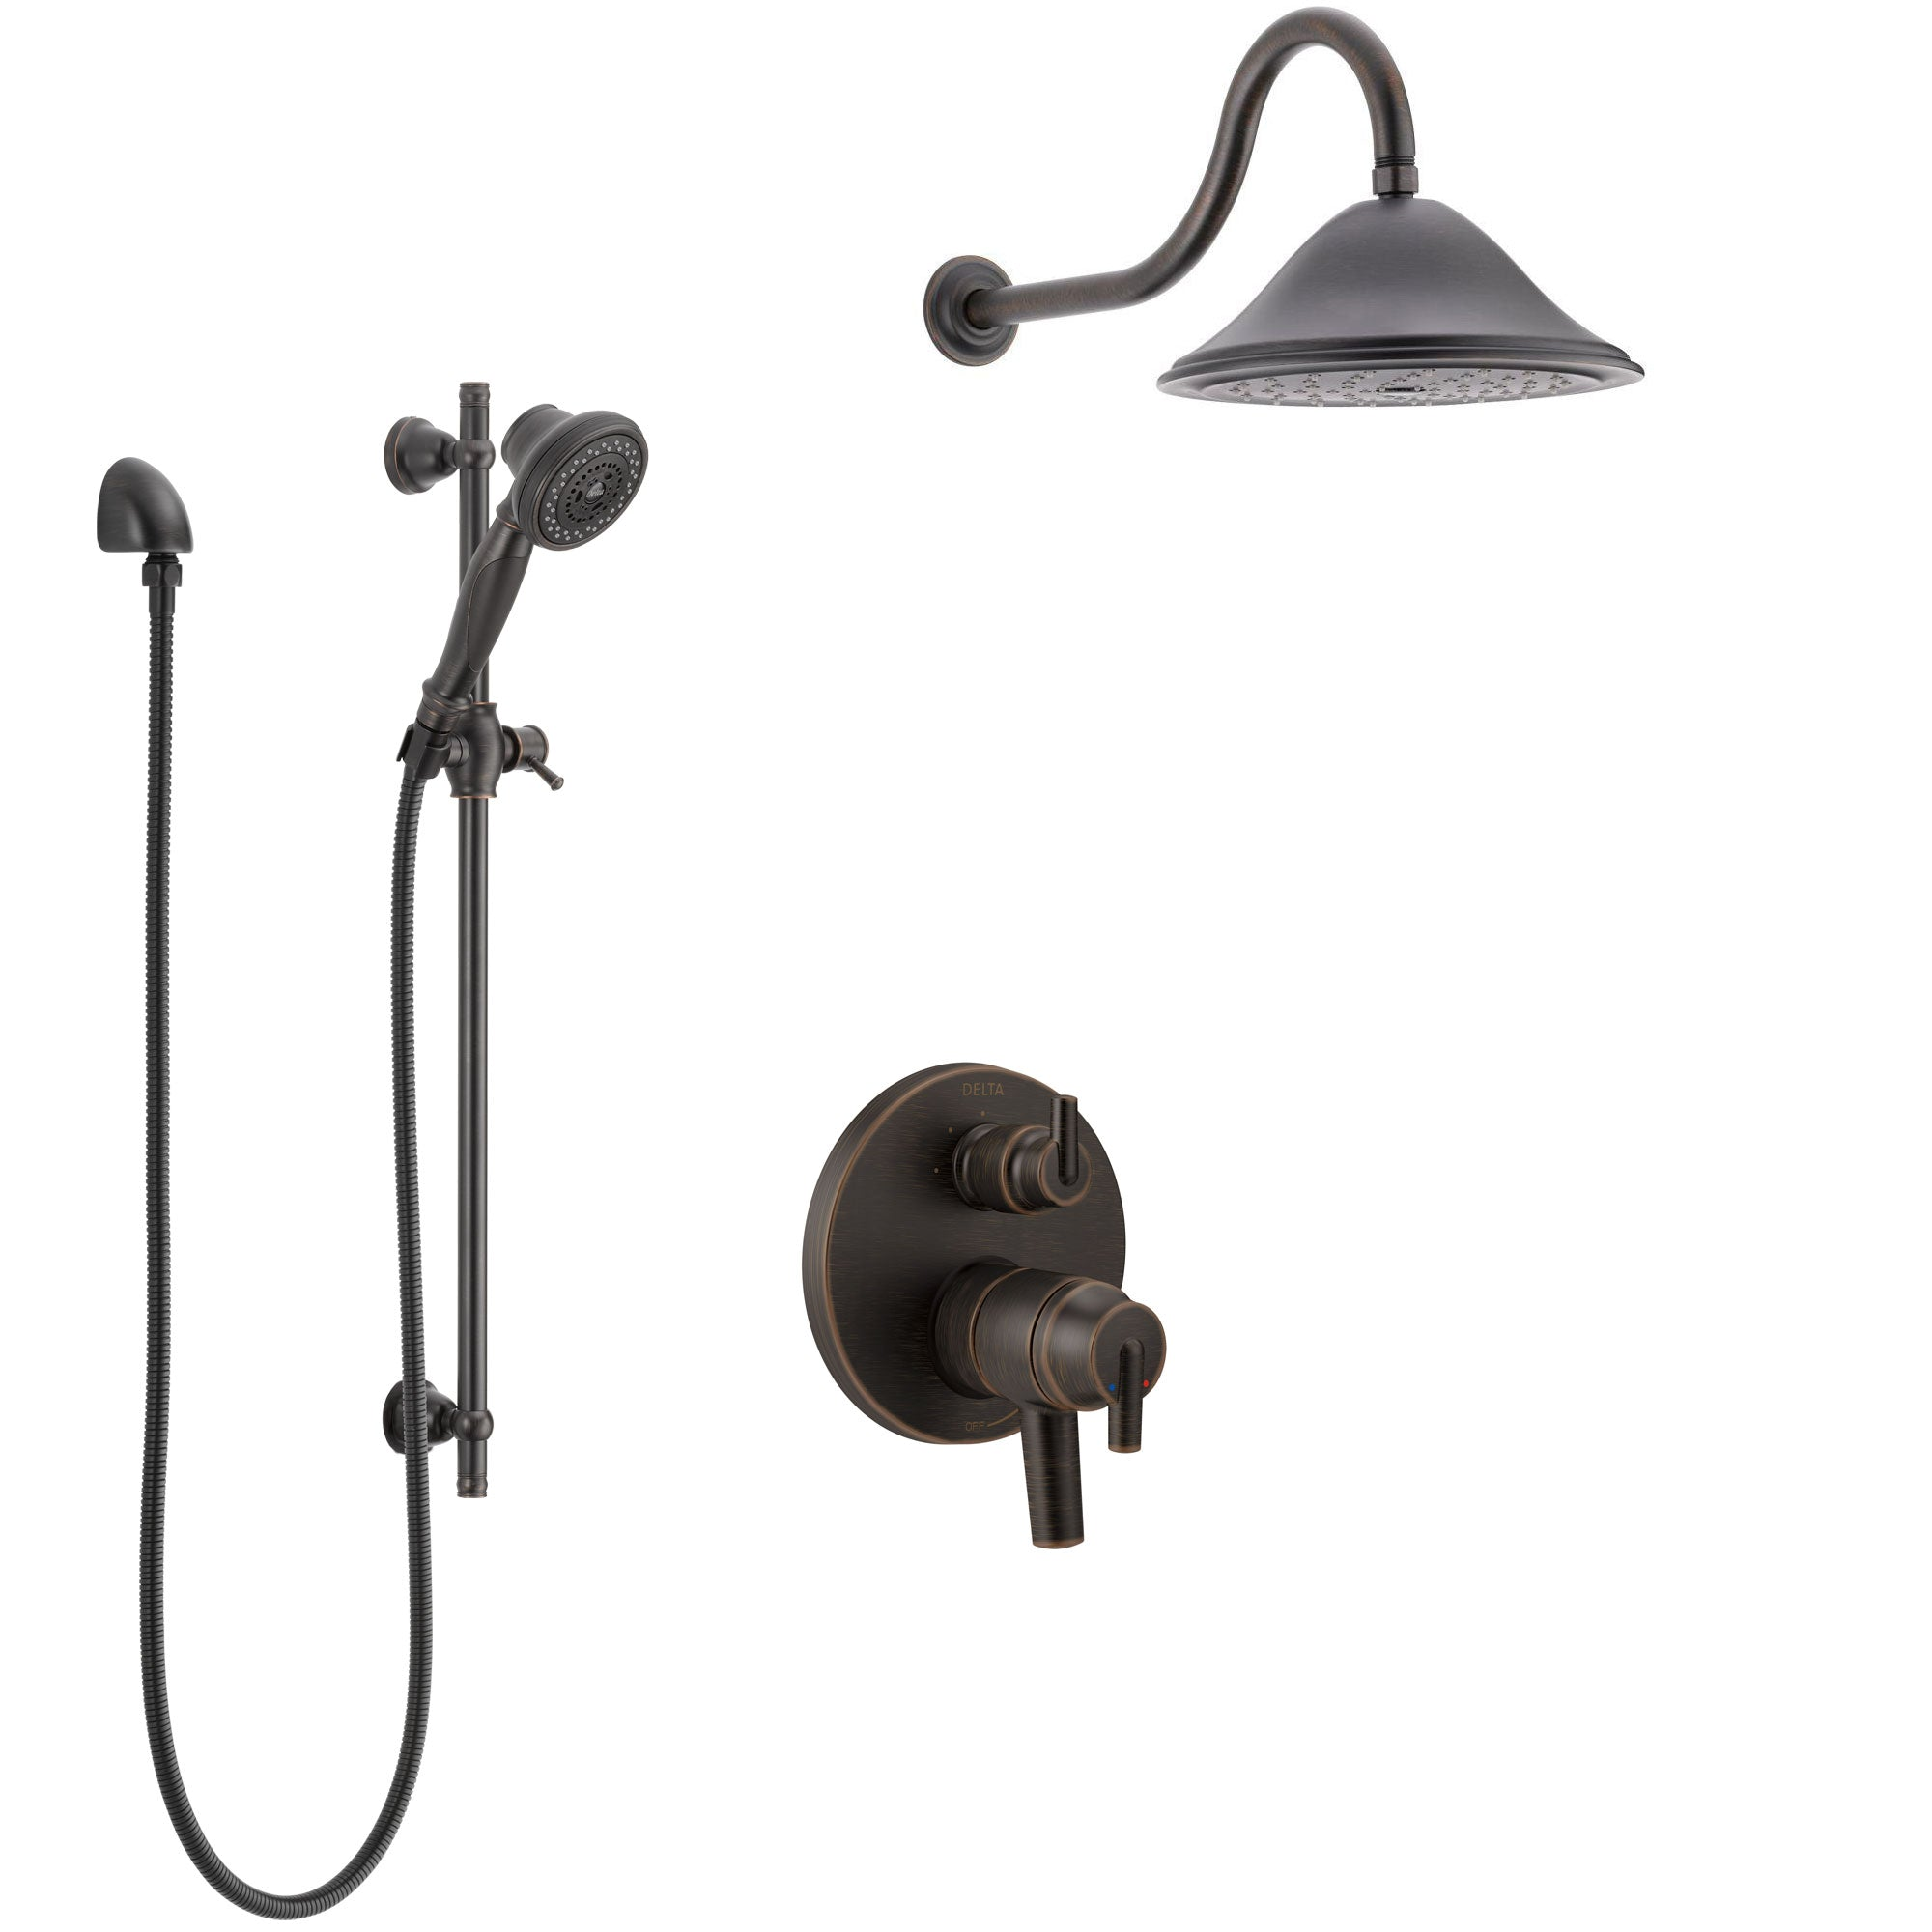 Delta Trinsic Venetian Bronze Shower System with Dual Control Handle, Integrated Diverter, Showerhead, and Hand Shower with Slidebar SS27859RB11